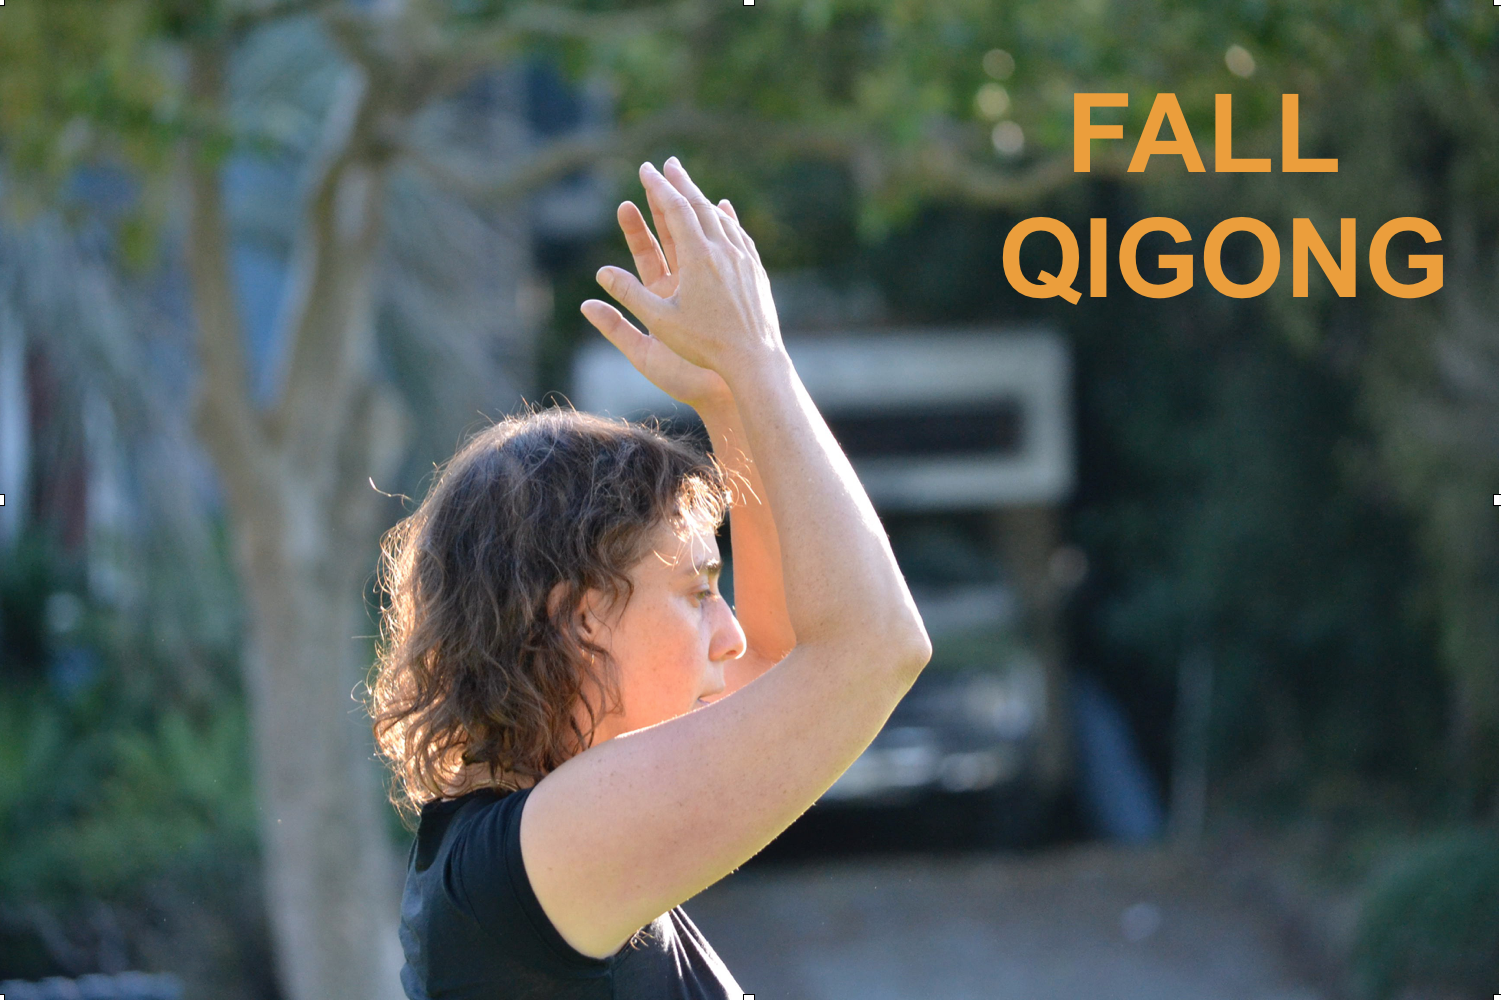 Graphic Fall Qigong